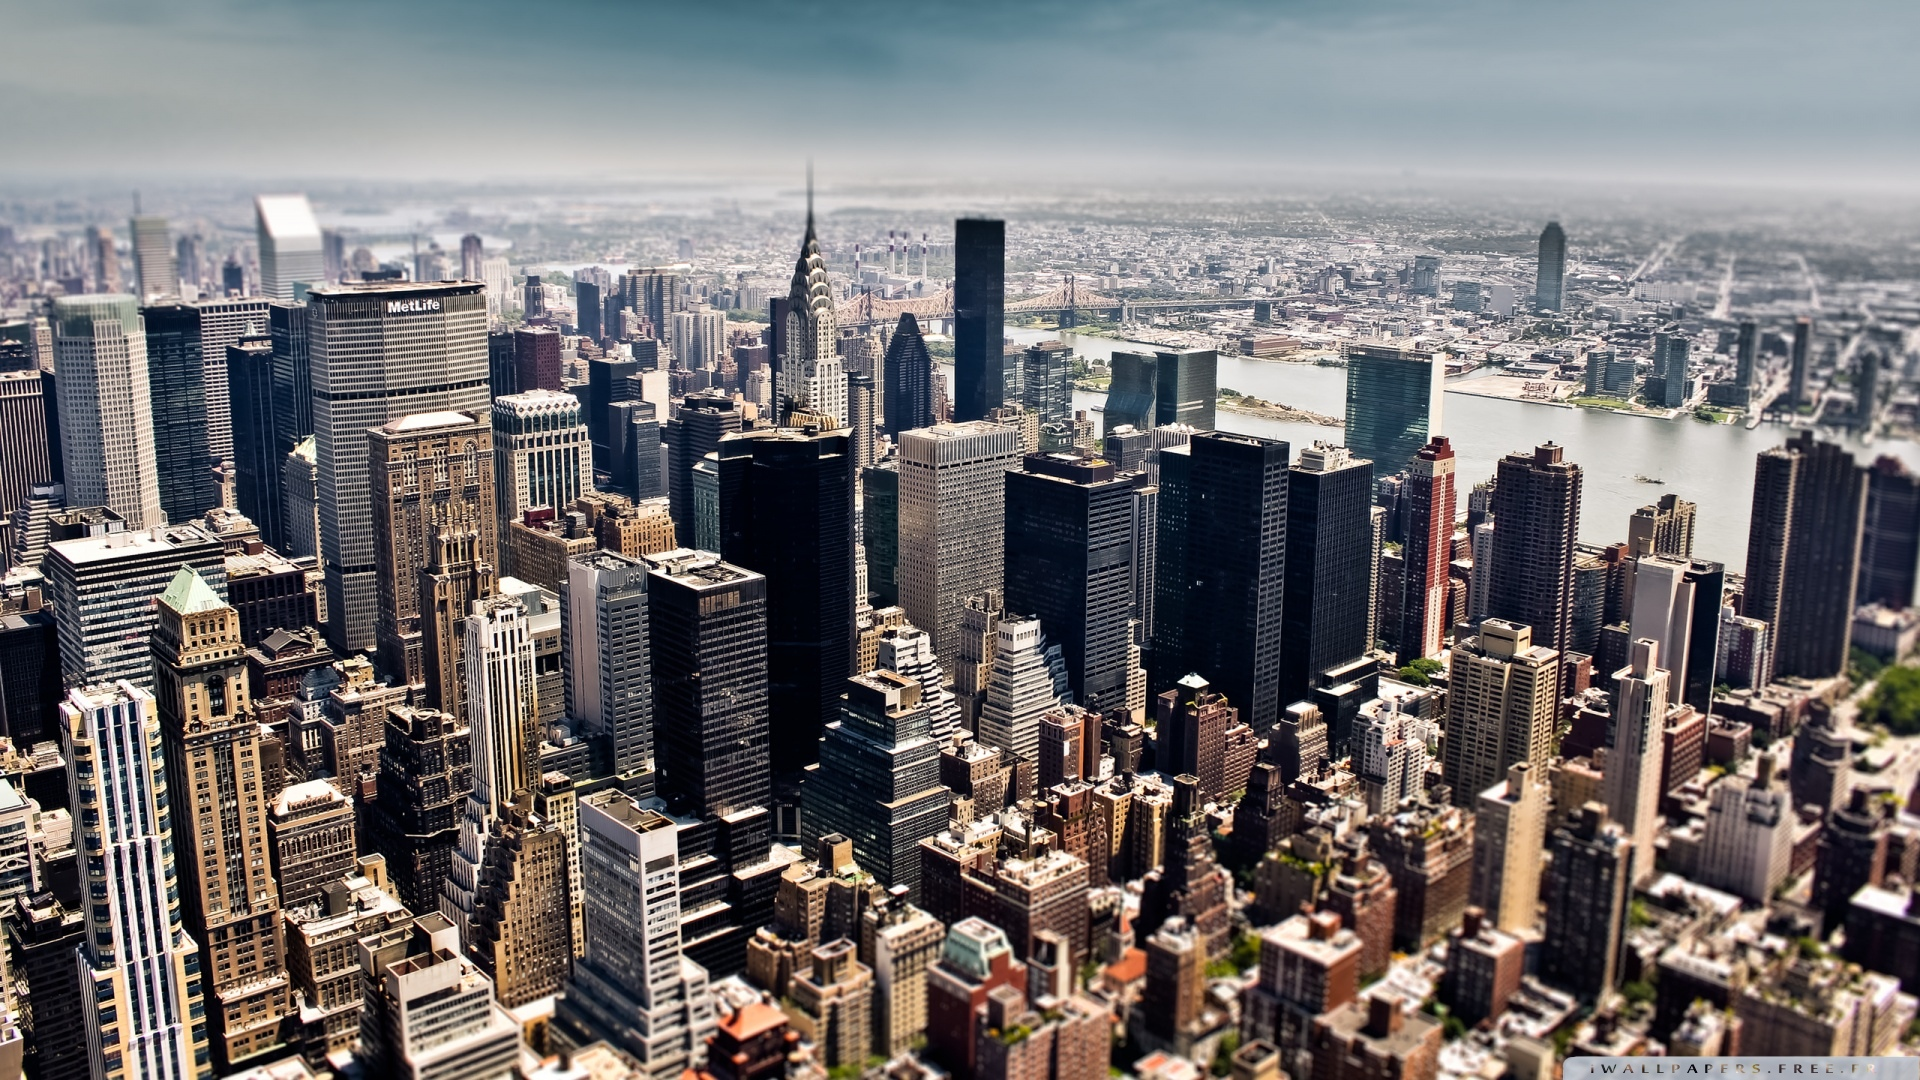 Très aerial view of new york city tilt shift photography-wallpaper  VV44